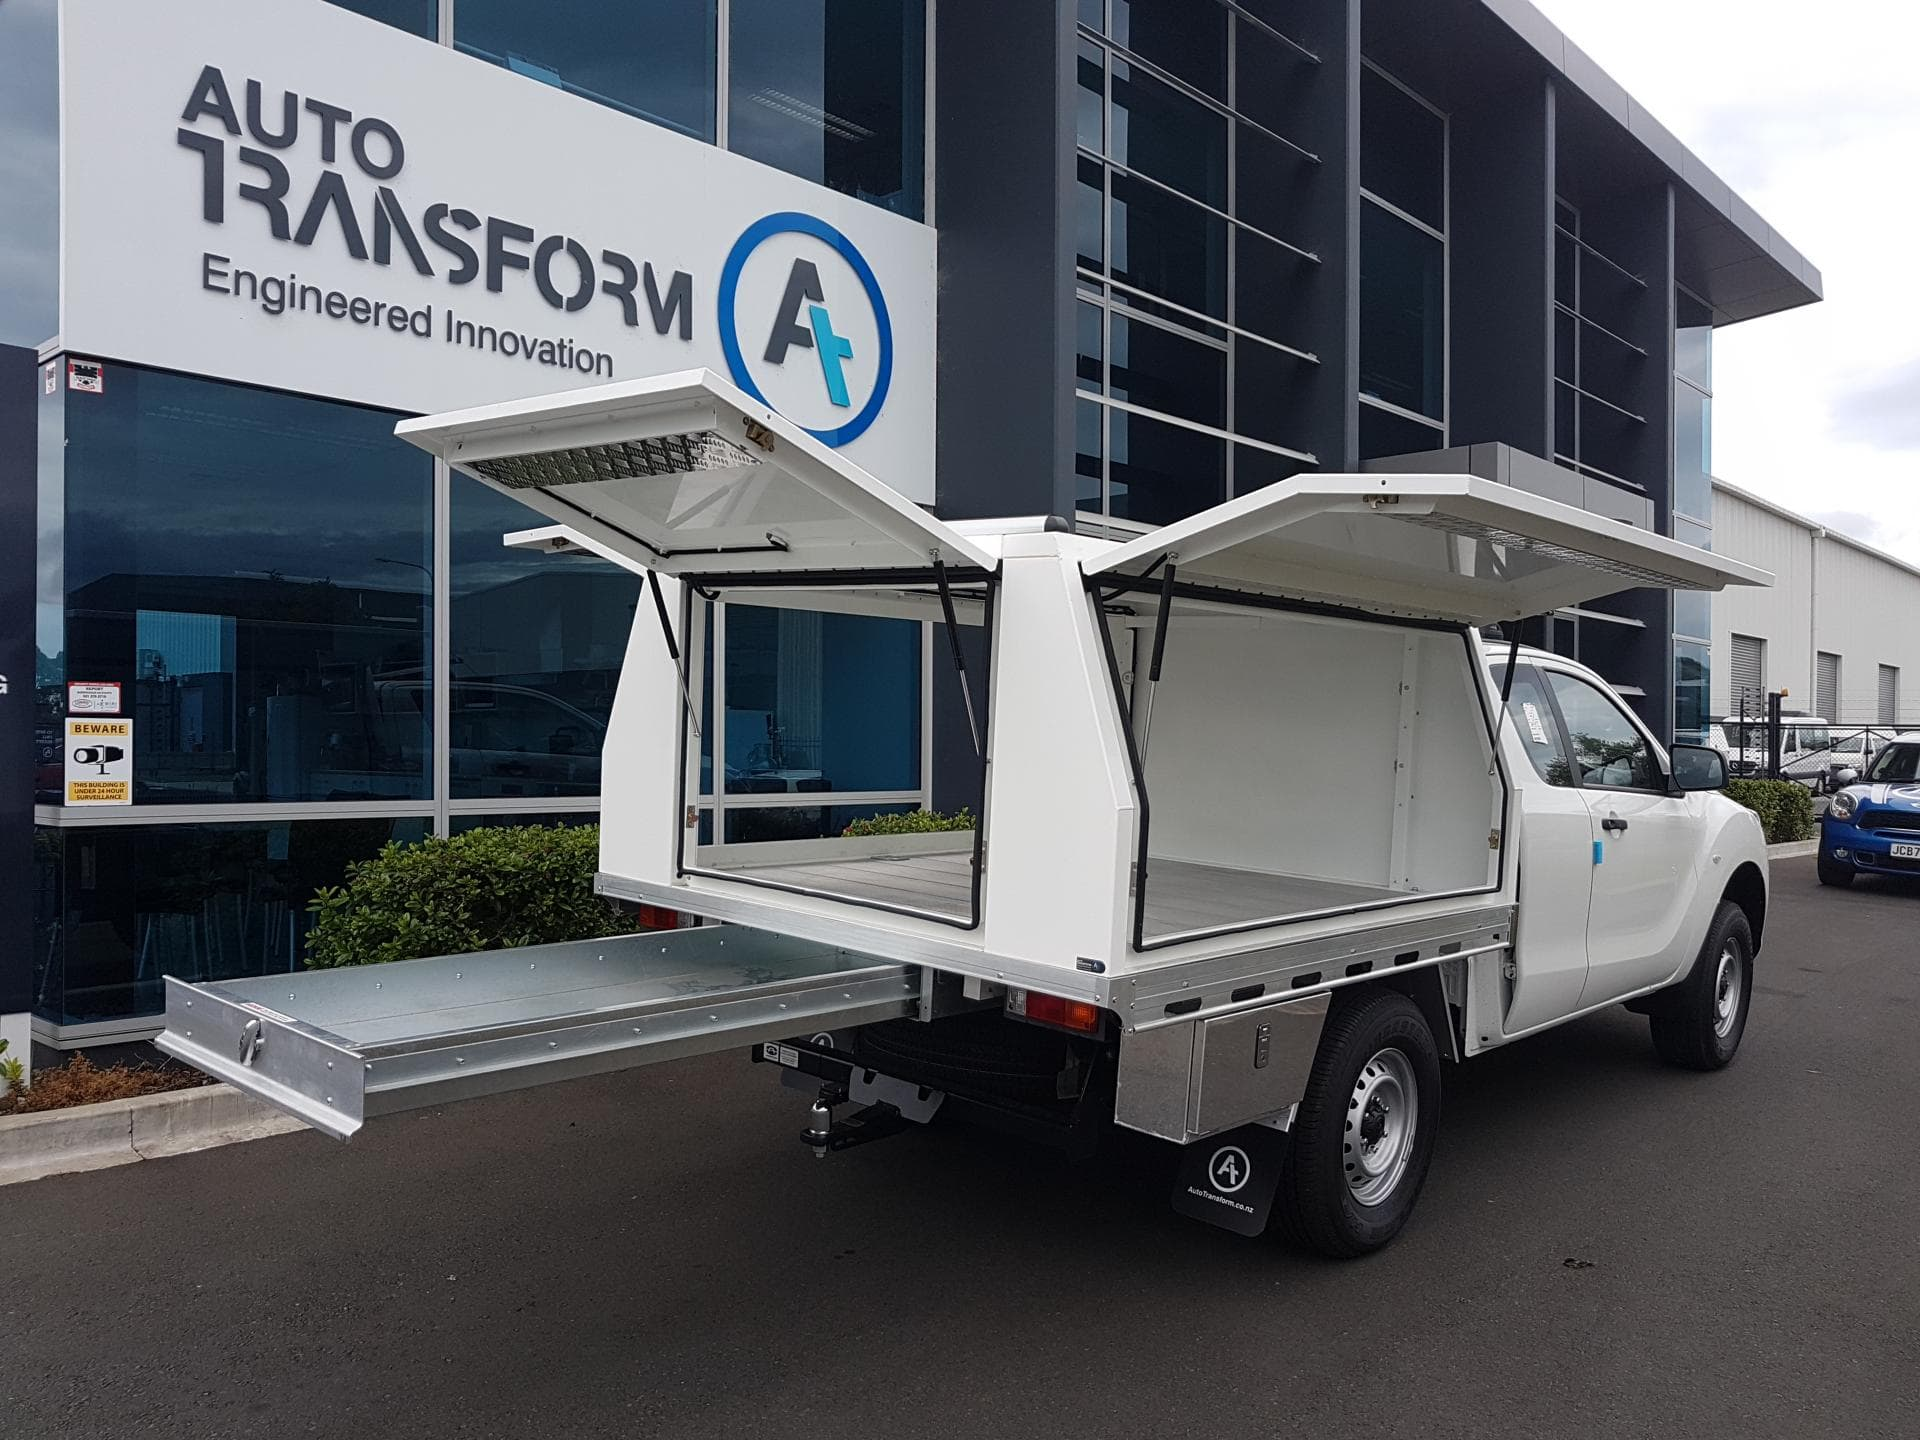 Commercial ute service body with open doors